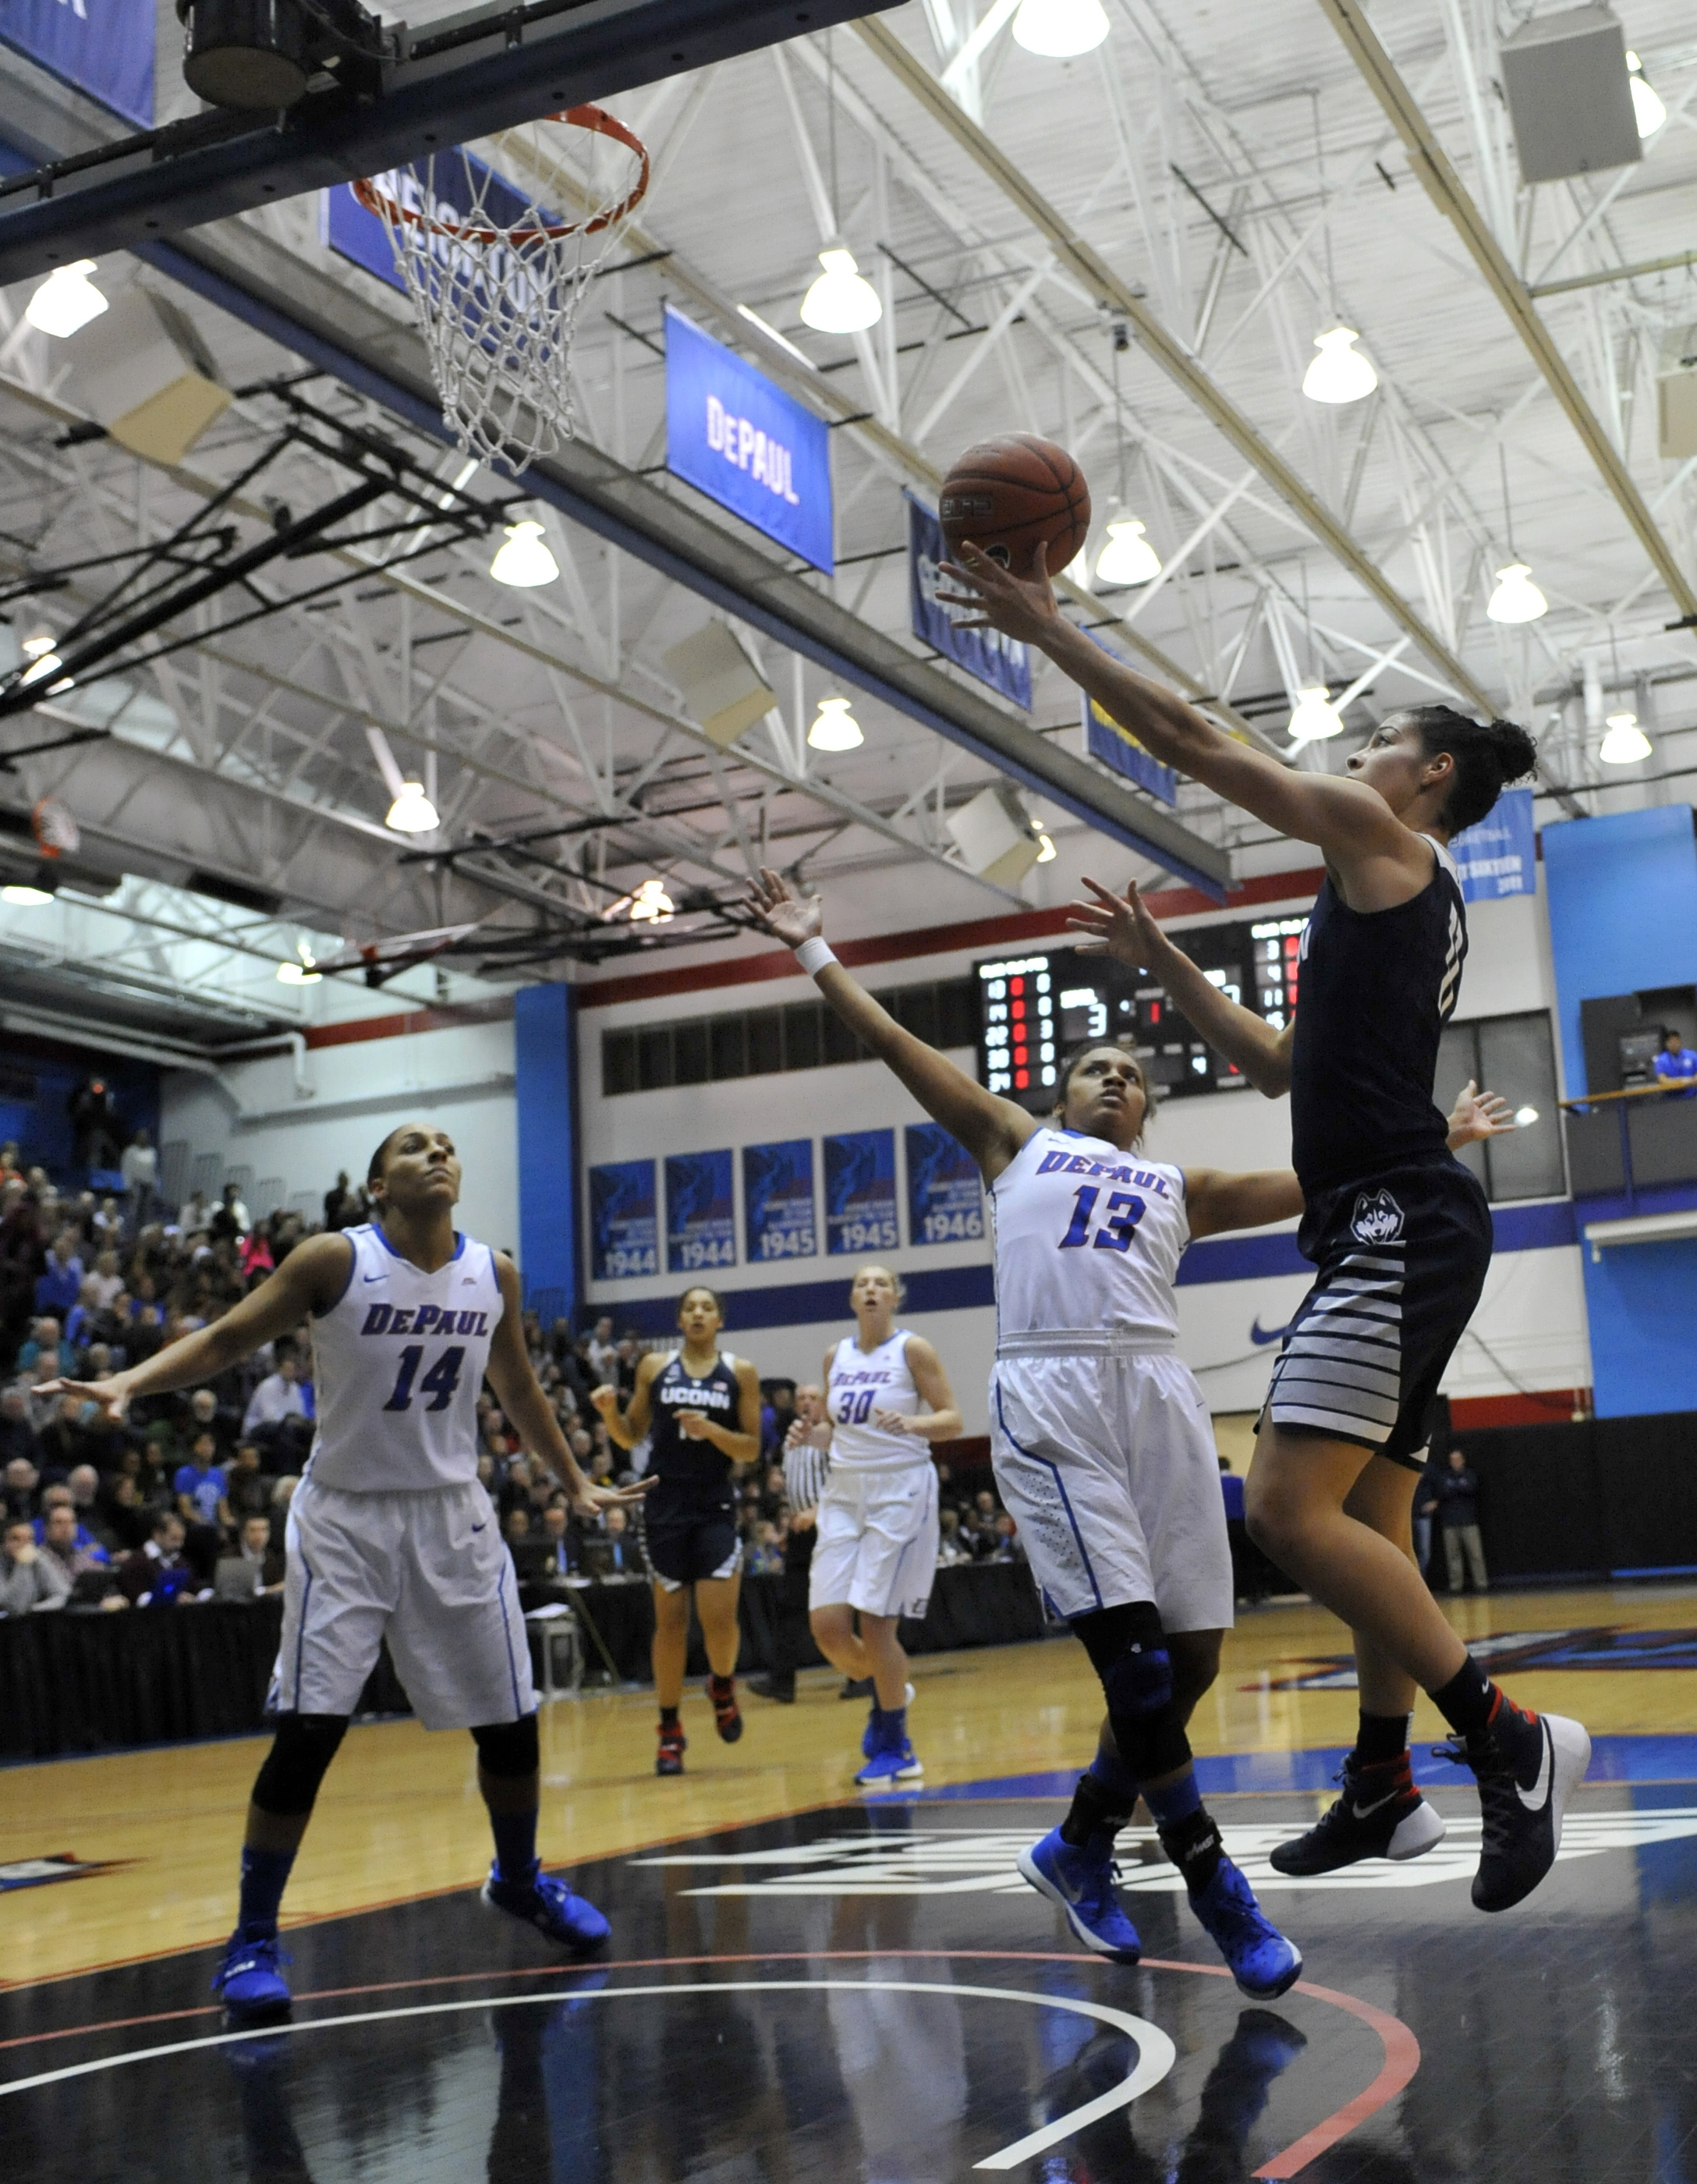 Connecticut's Kia Nurse (11) goes up for a shot against DePaul's Chanise Jenkins (13) during the first half of an NCAA college basketball game, Wednesday, Dec. 2, 2015, in Chicago. (AP Photo/Paul Beaty)